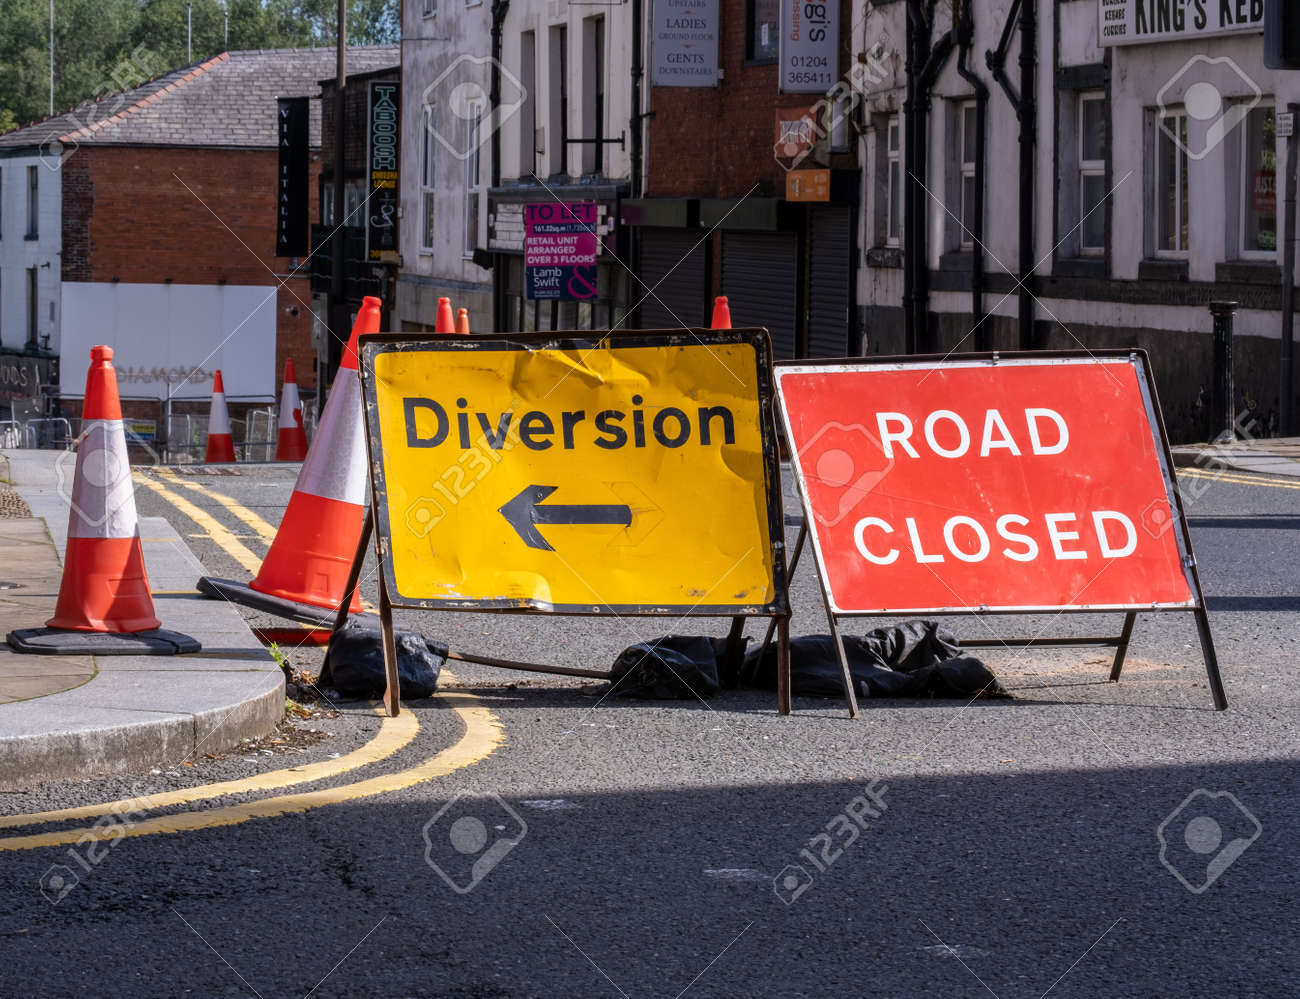 diversion and road closed sign in the town centre in Bolton Lancashire July 2020 - 156133890